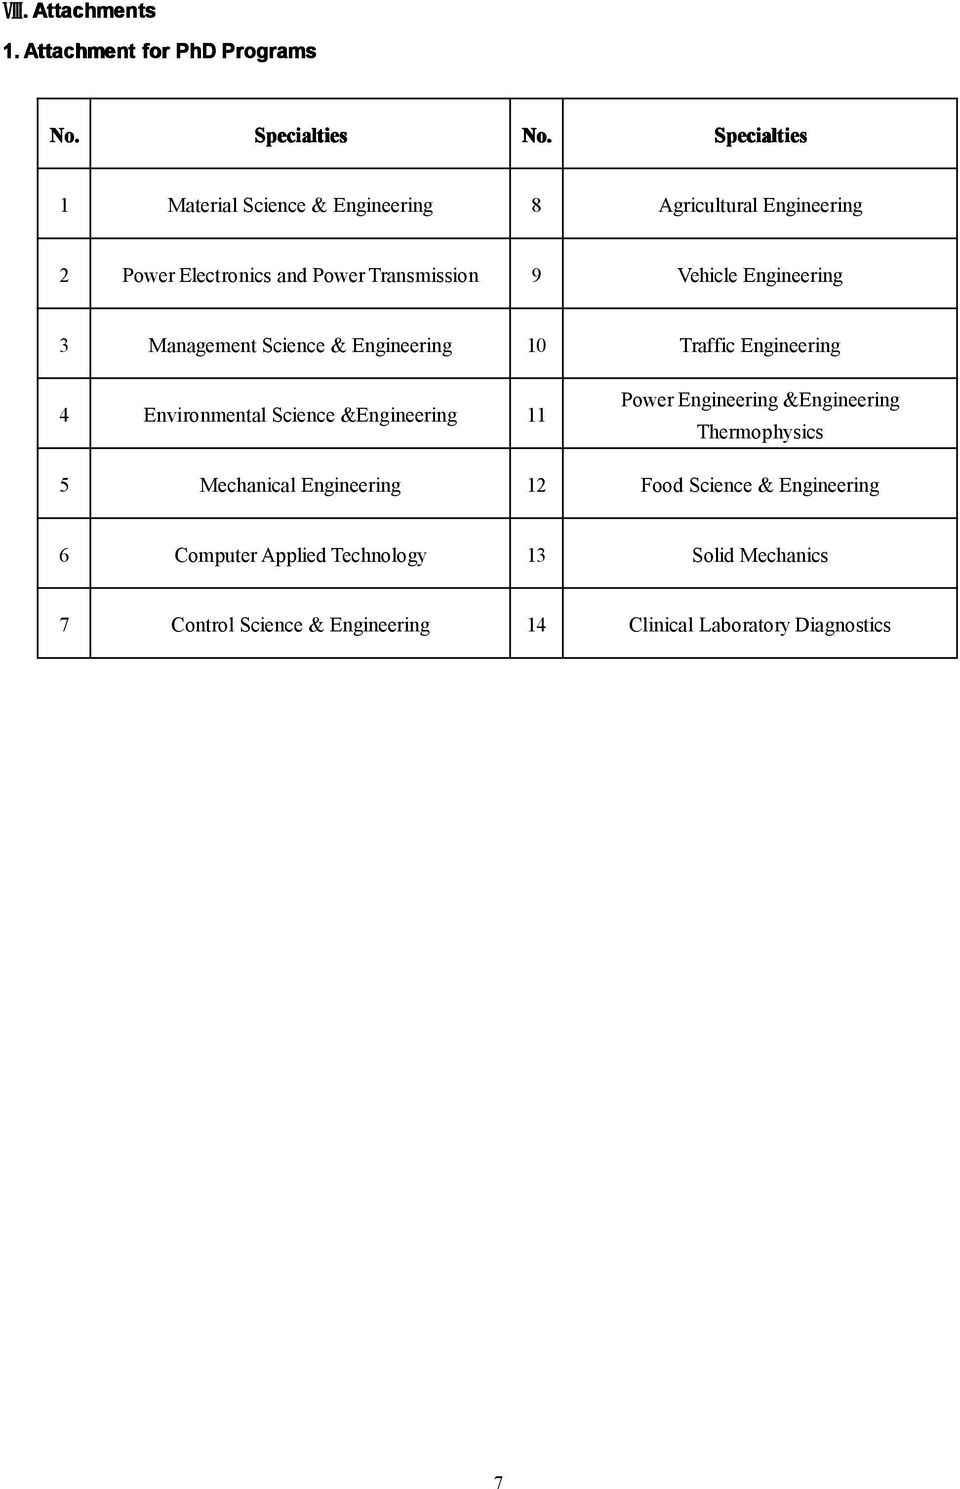 Transmission 9 Vehicle Engineering 3 Management Science & Engineering 10 Traffic Engineering 4 Environmental Science